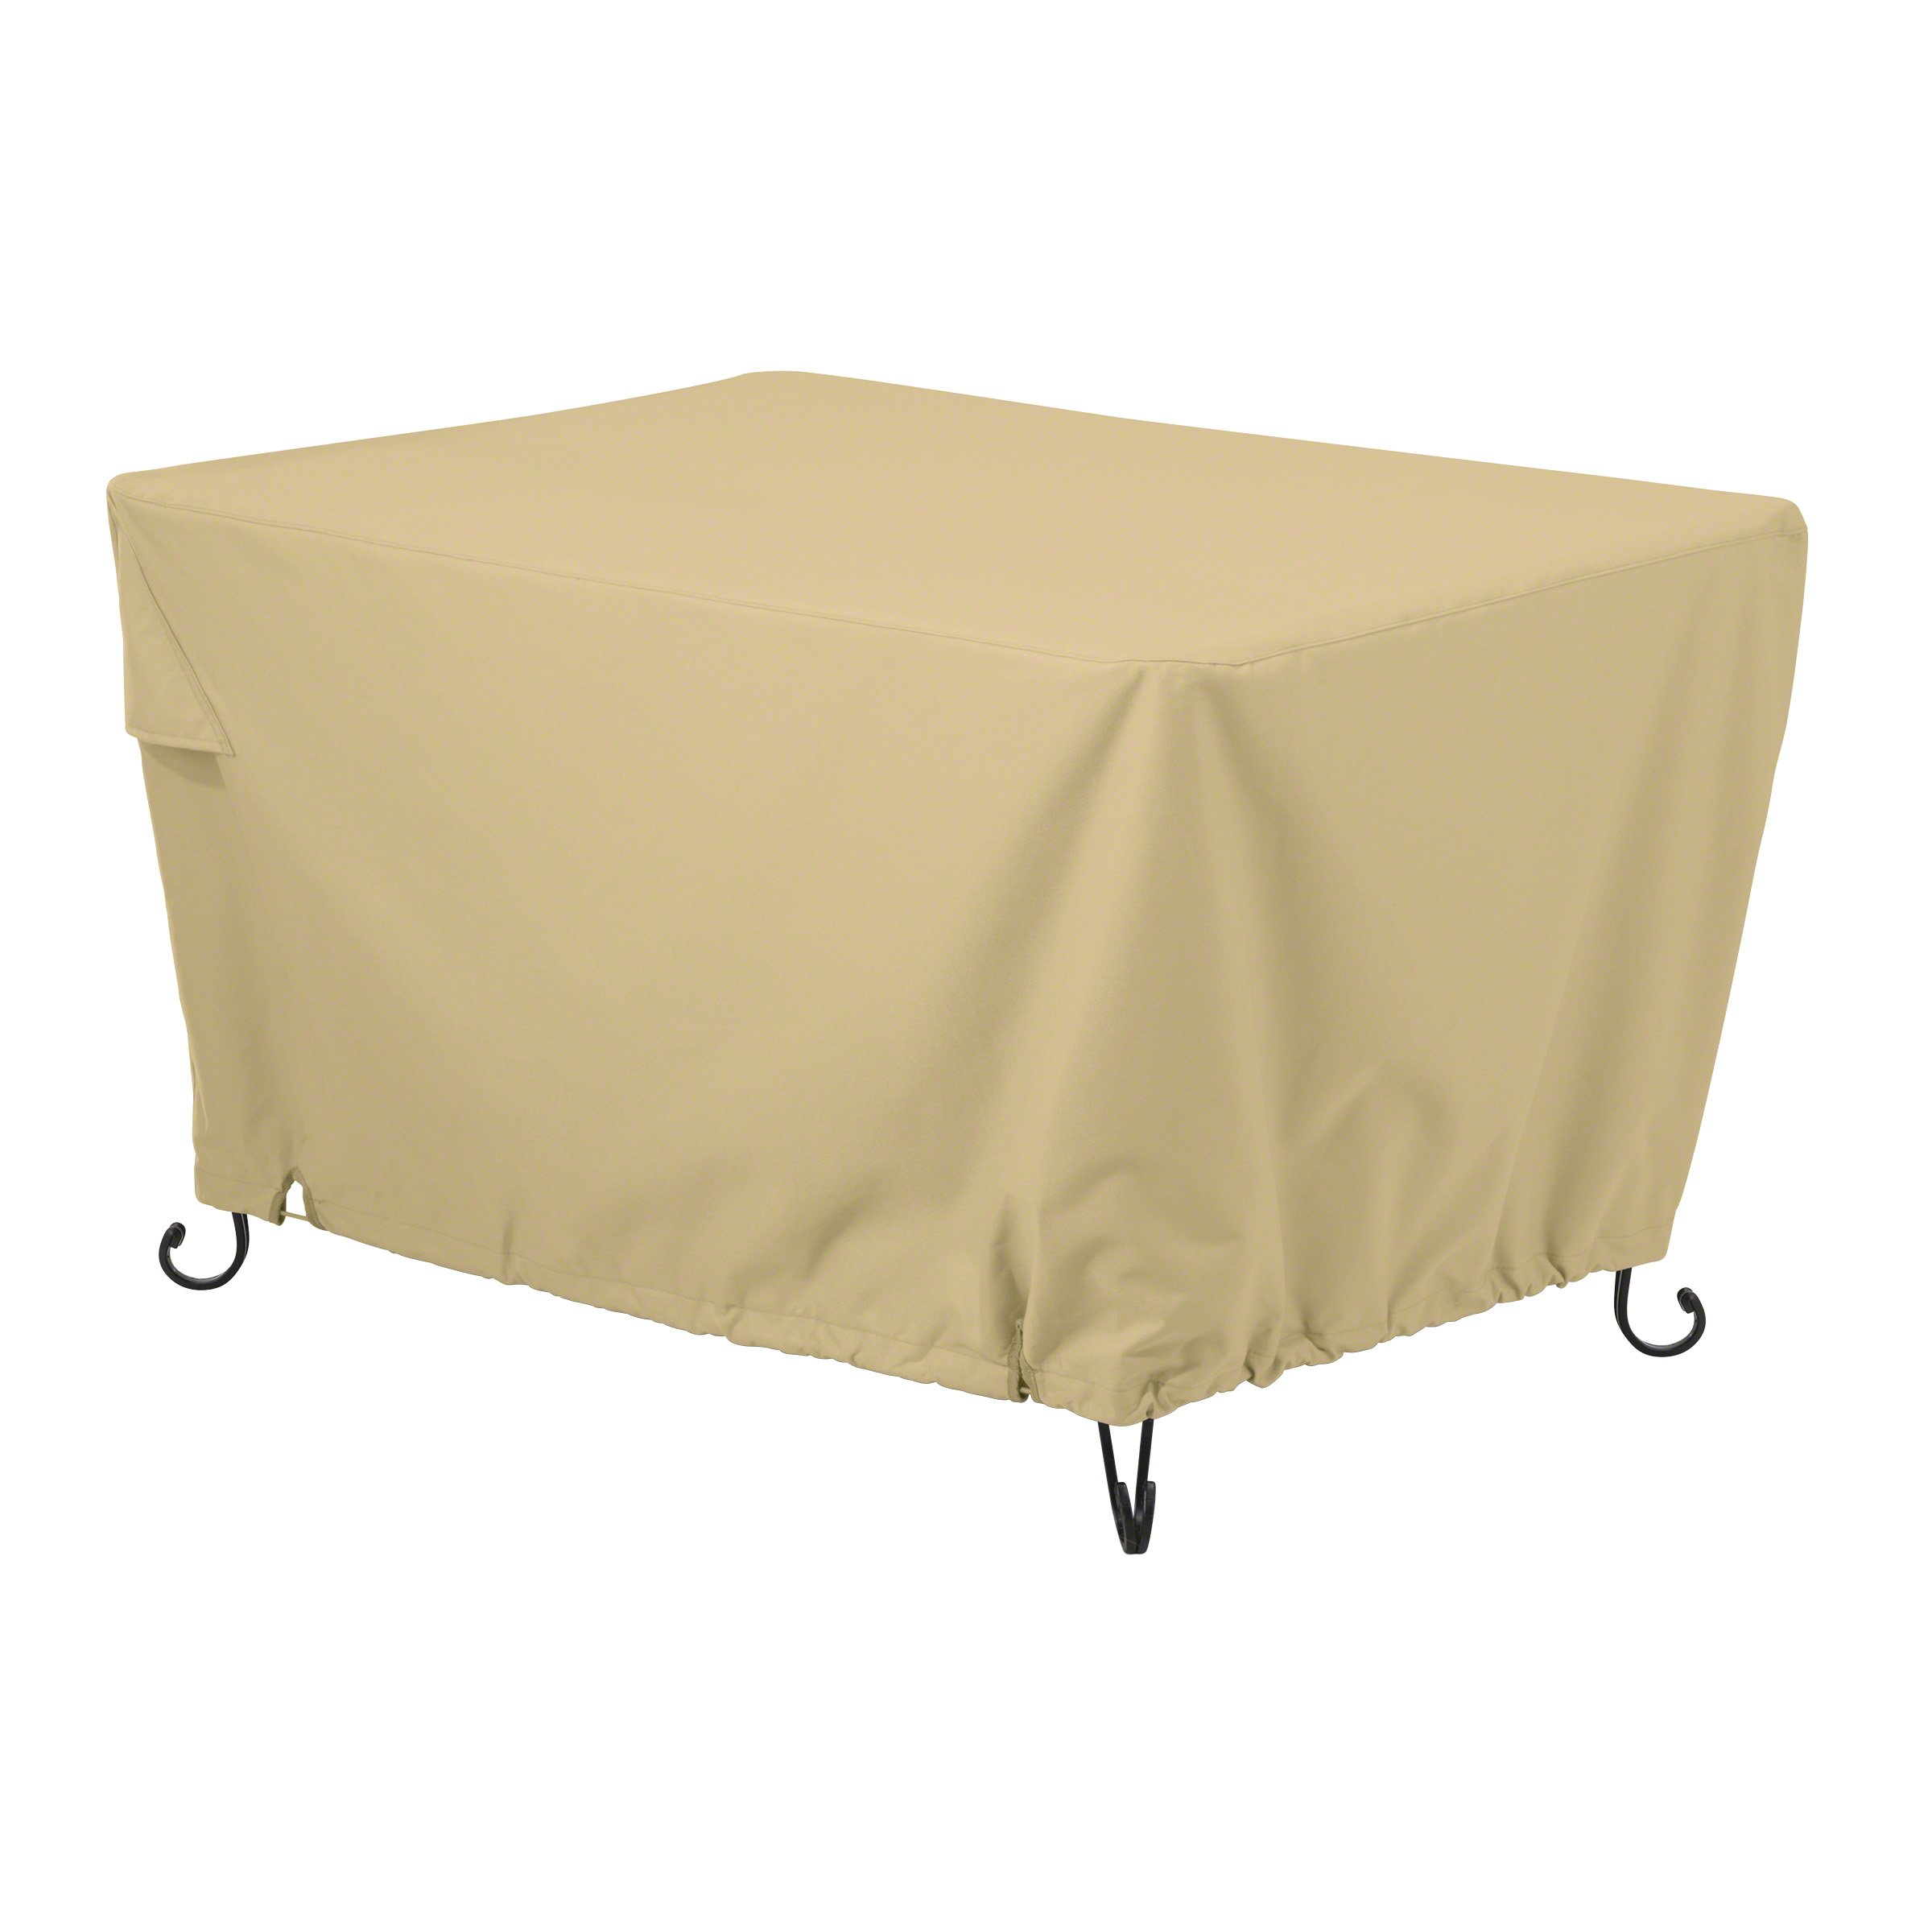 Classic Accessories Terrazzo Rectangular Outdoor Patio Fire Pit or Table Cover, 56 Inch